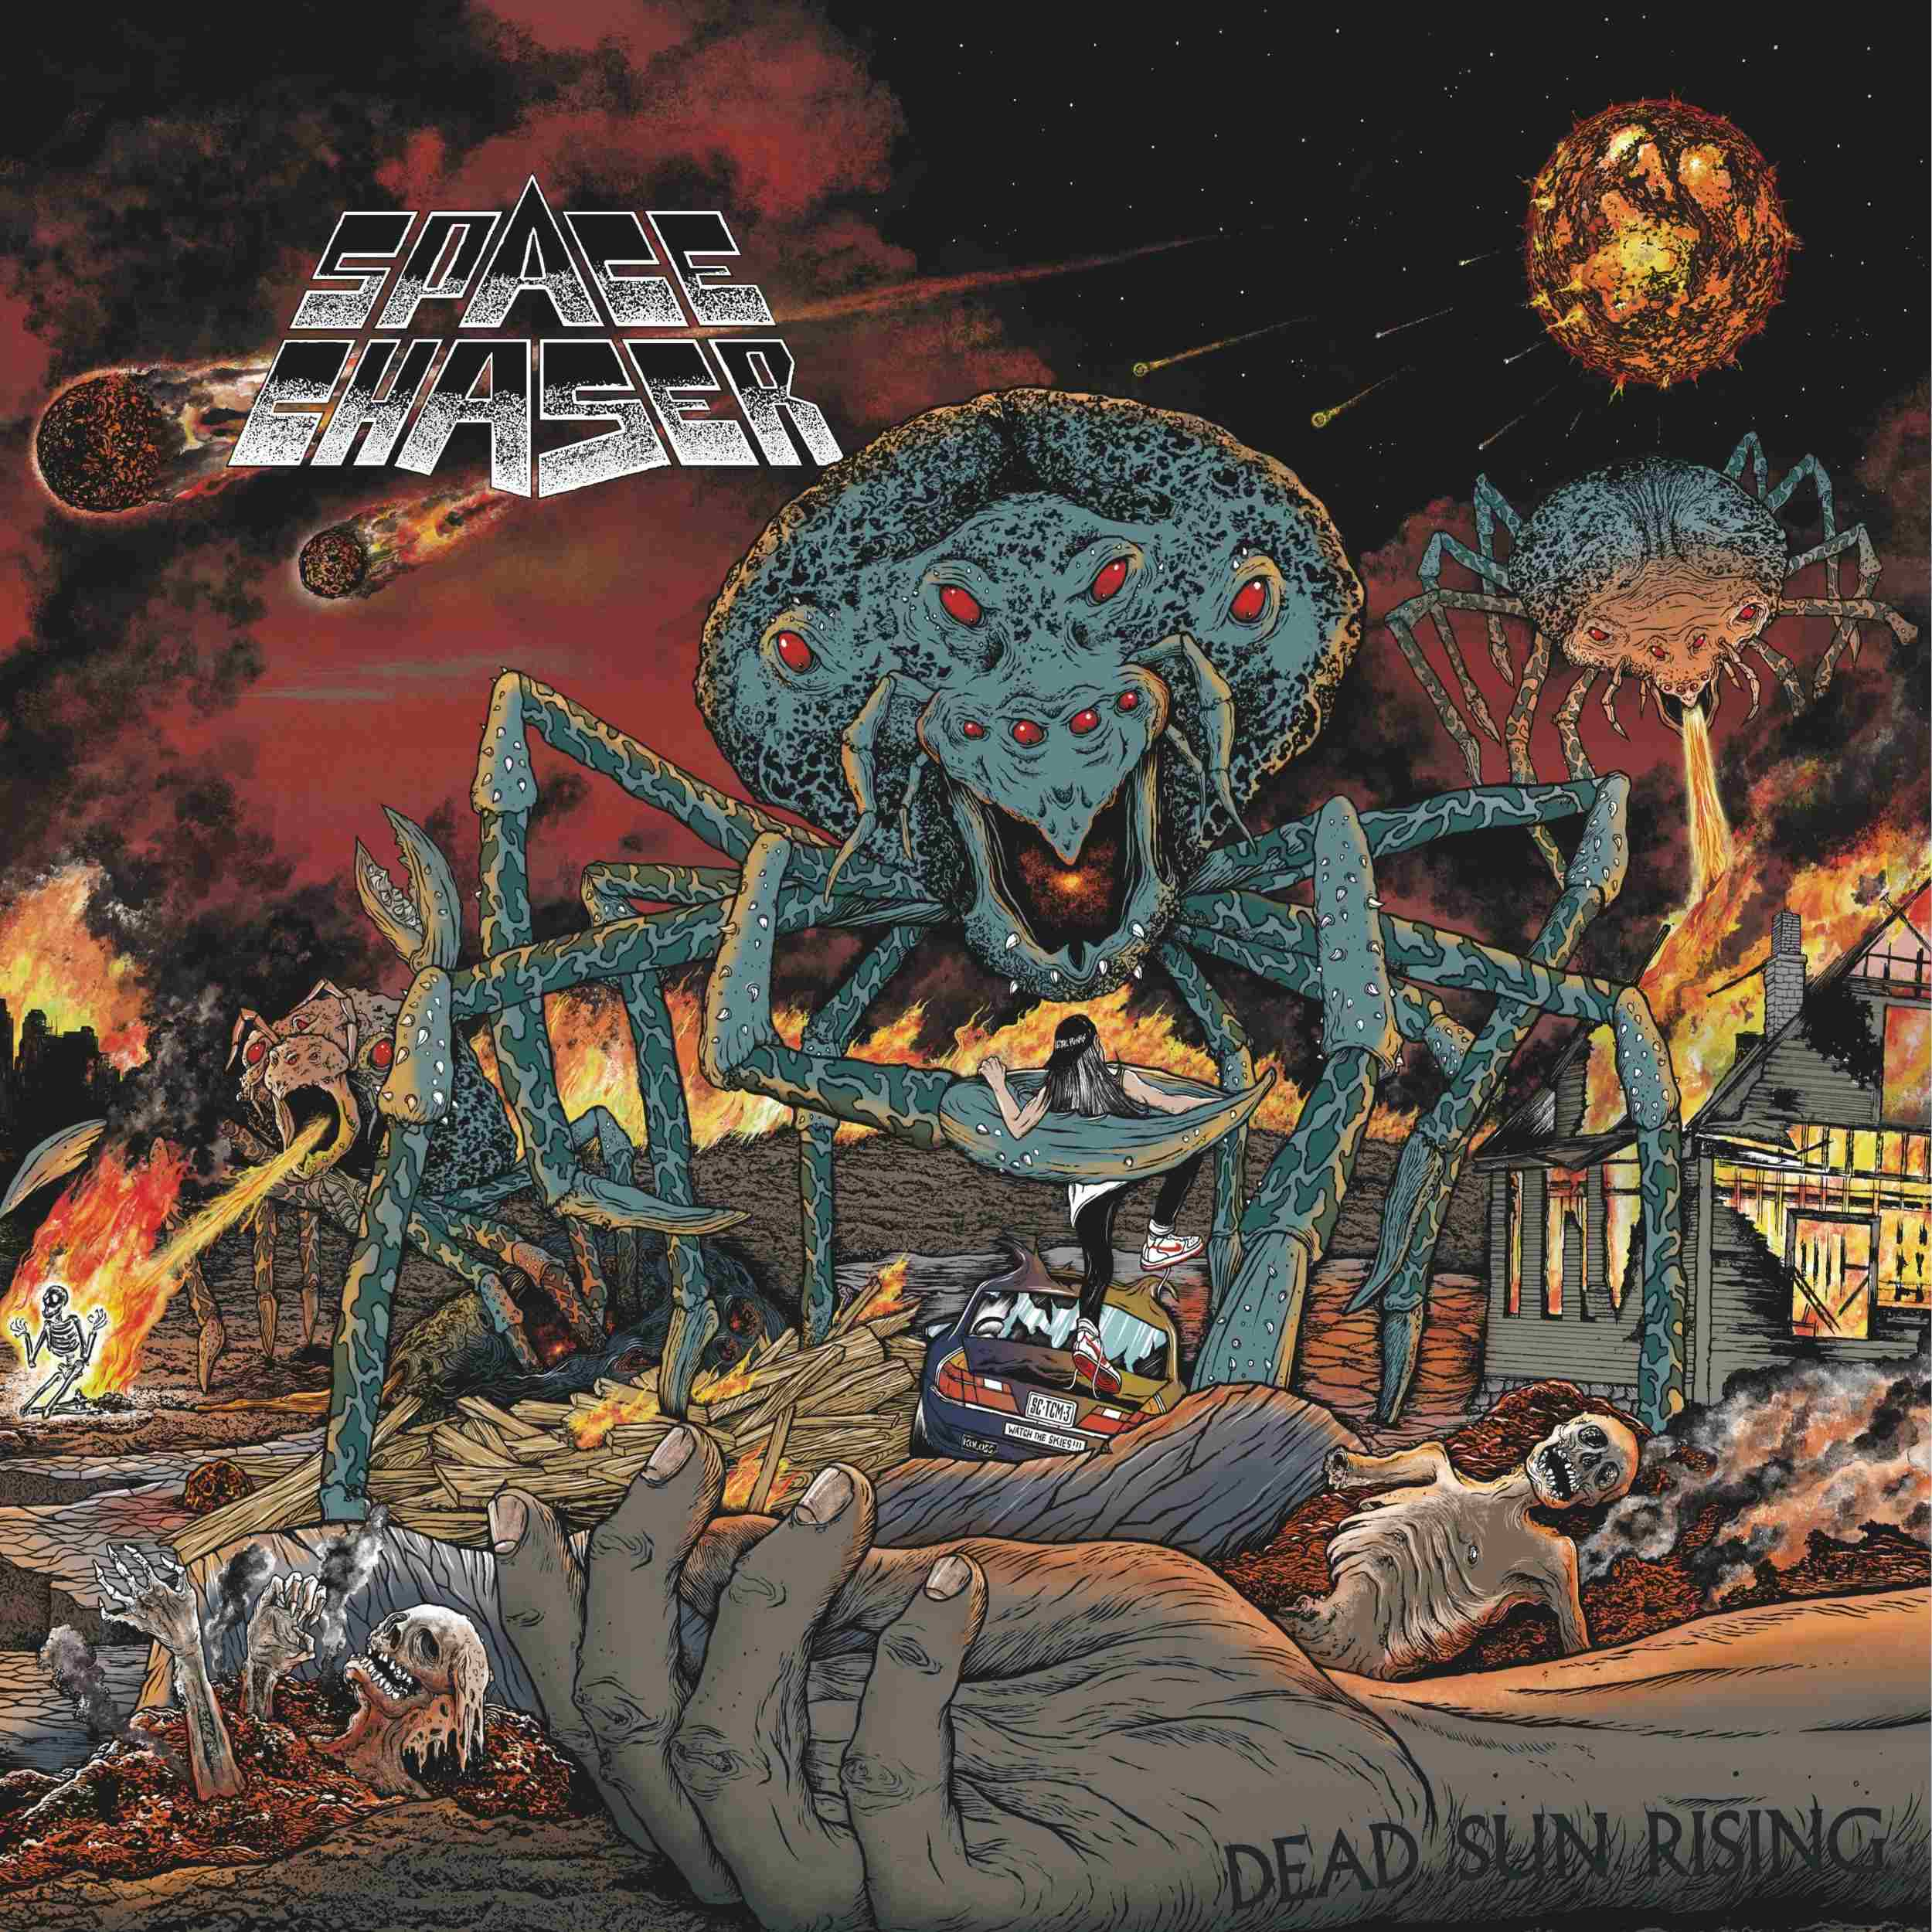 Space Chaser Dead Sun Rising Cover